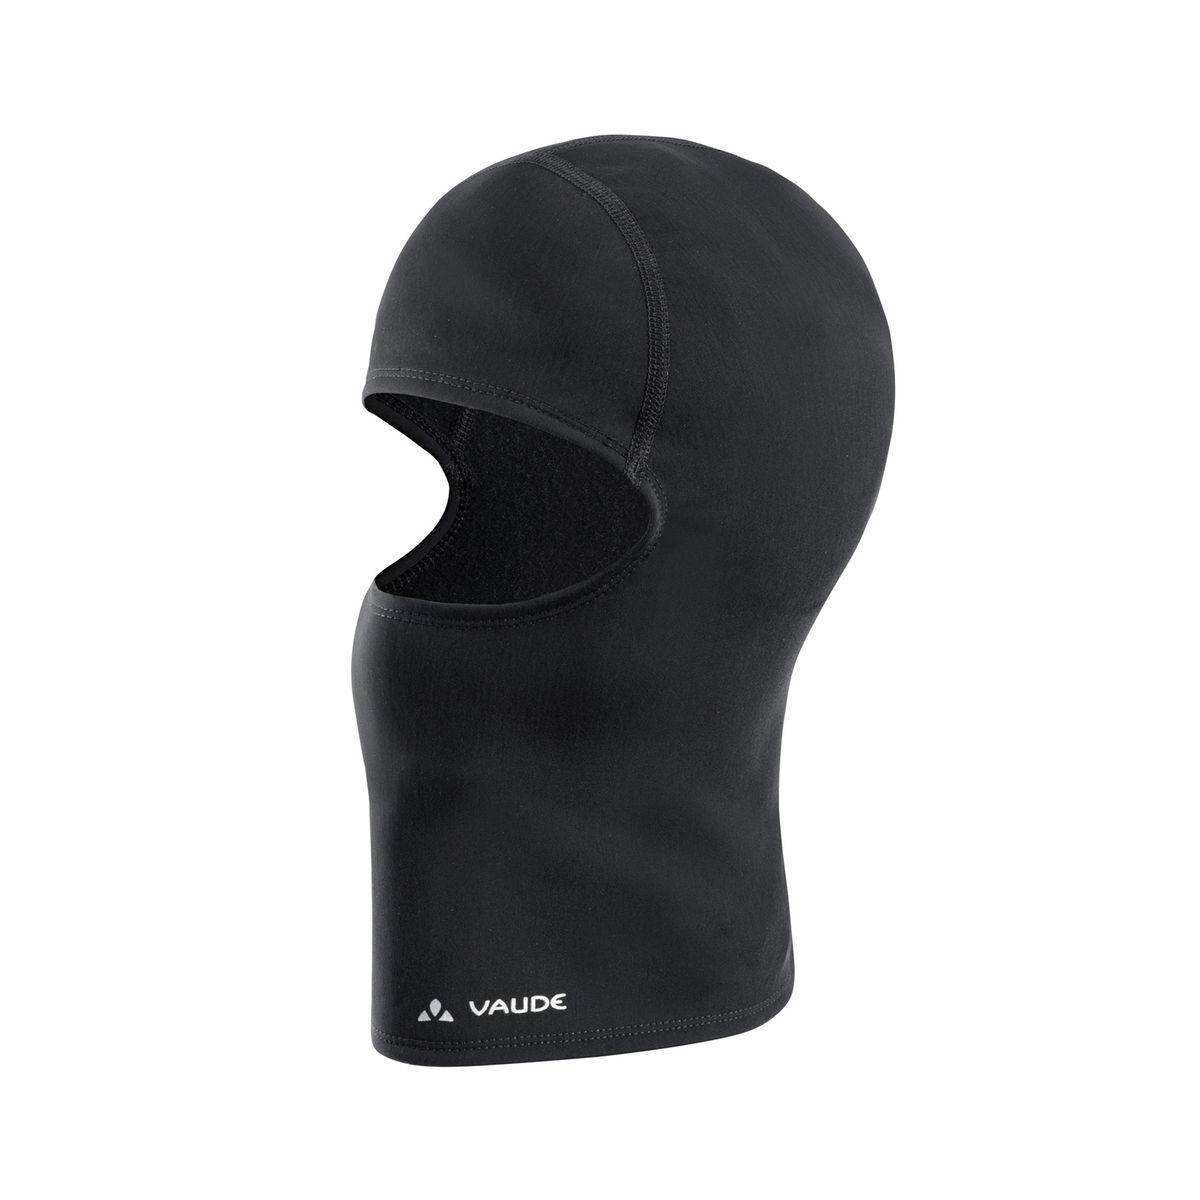 FACE MASK kids' balaclava